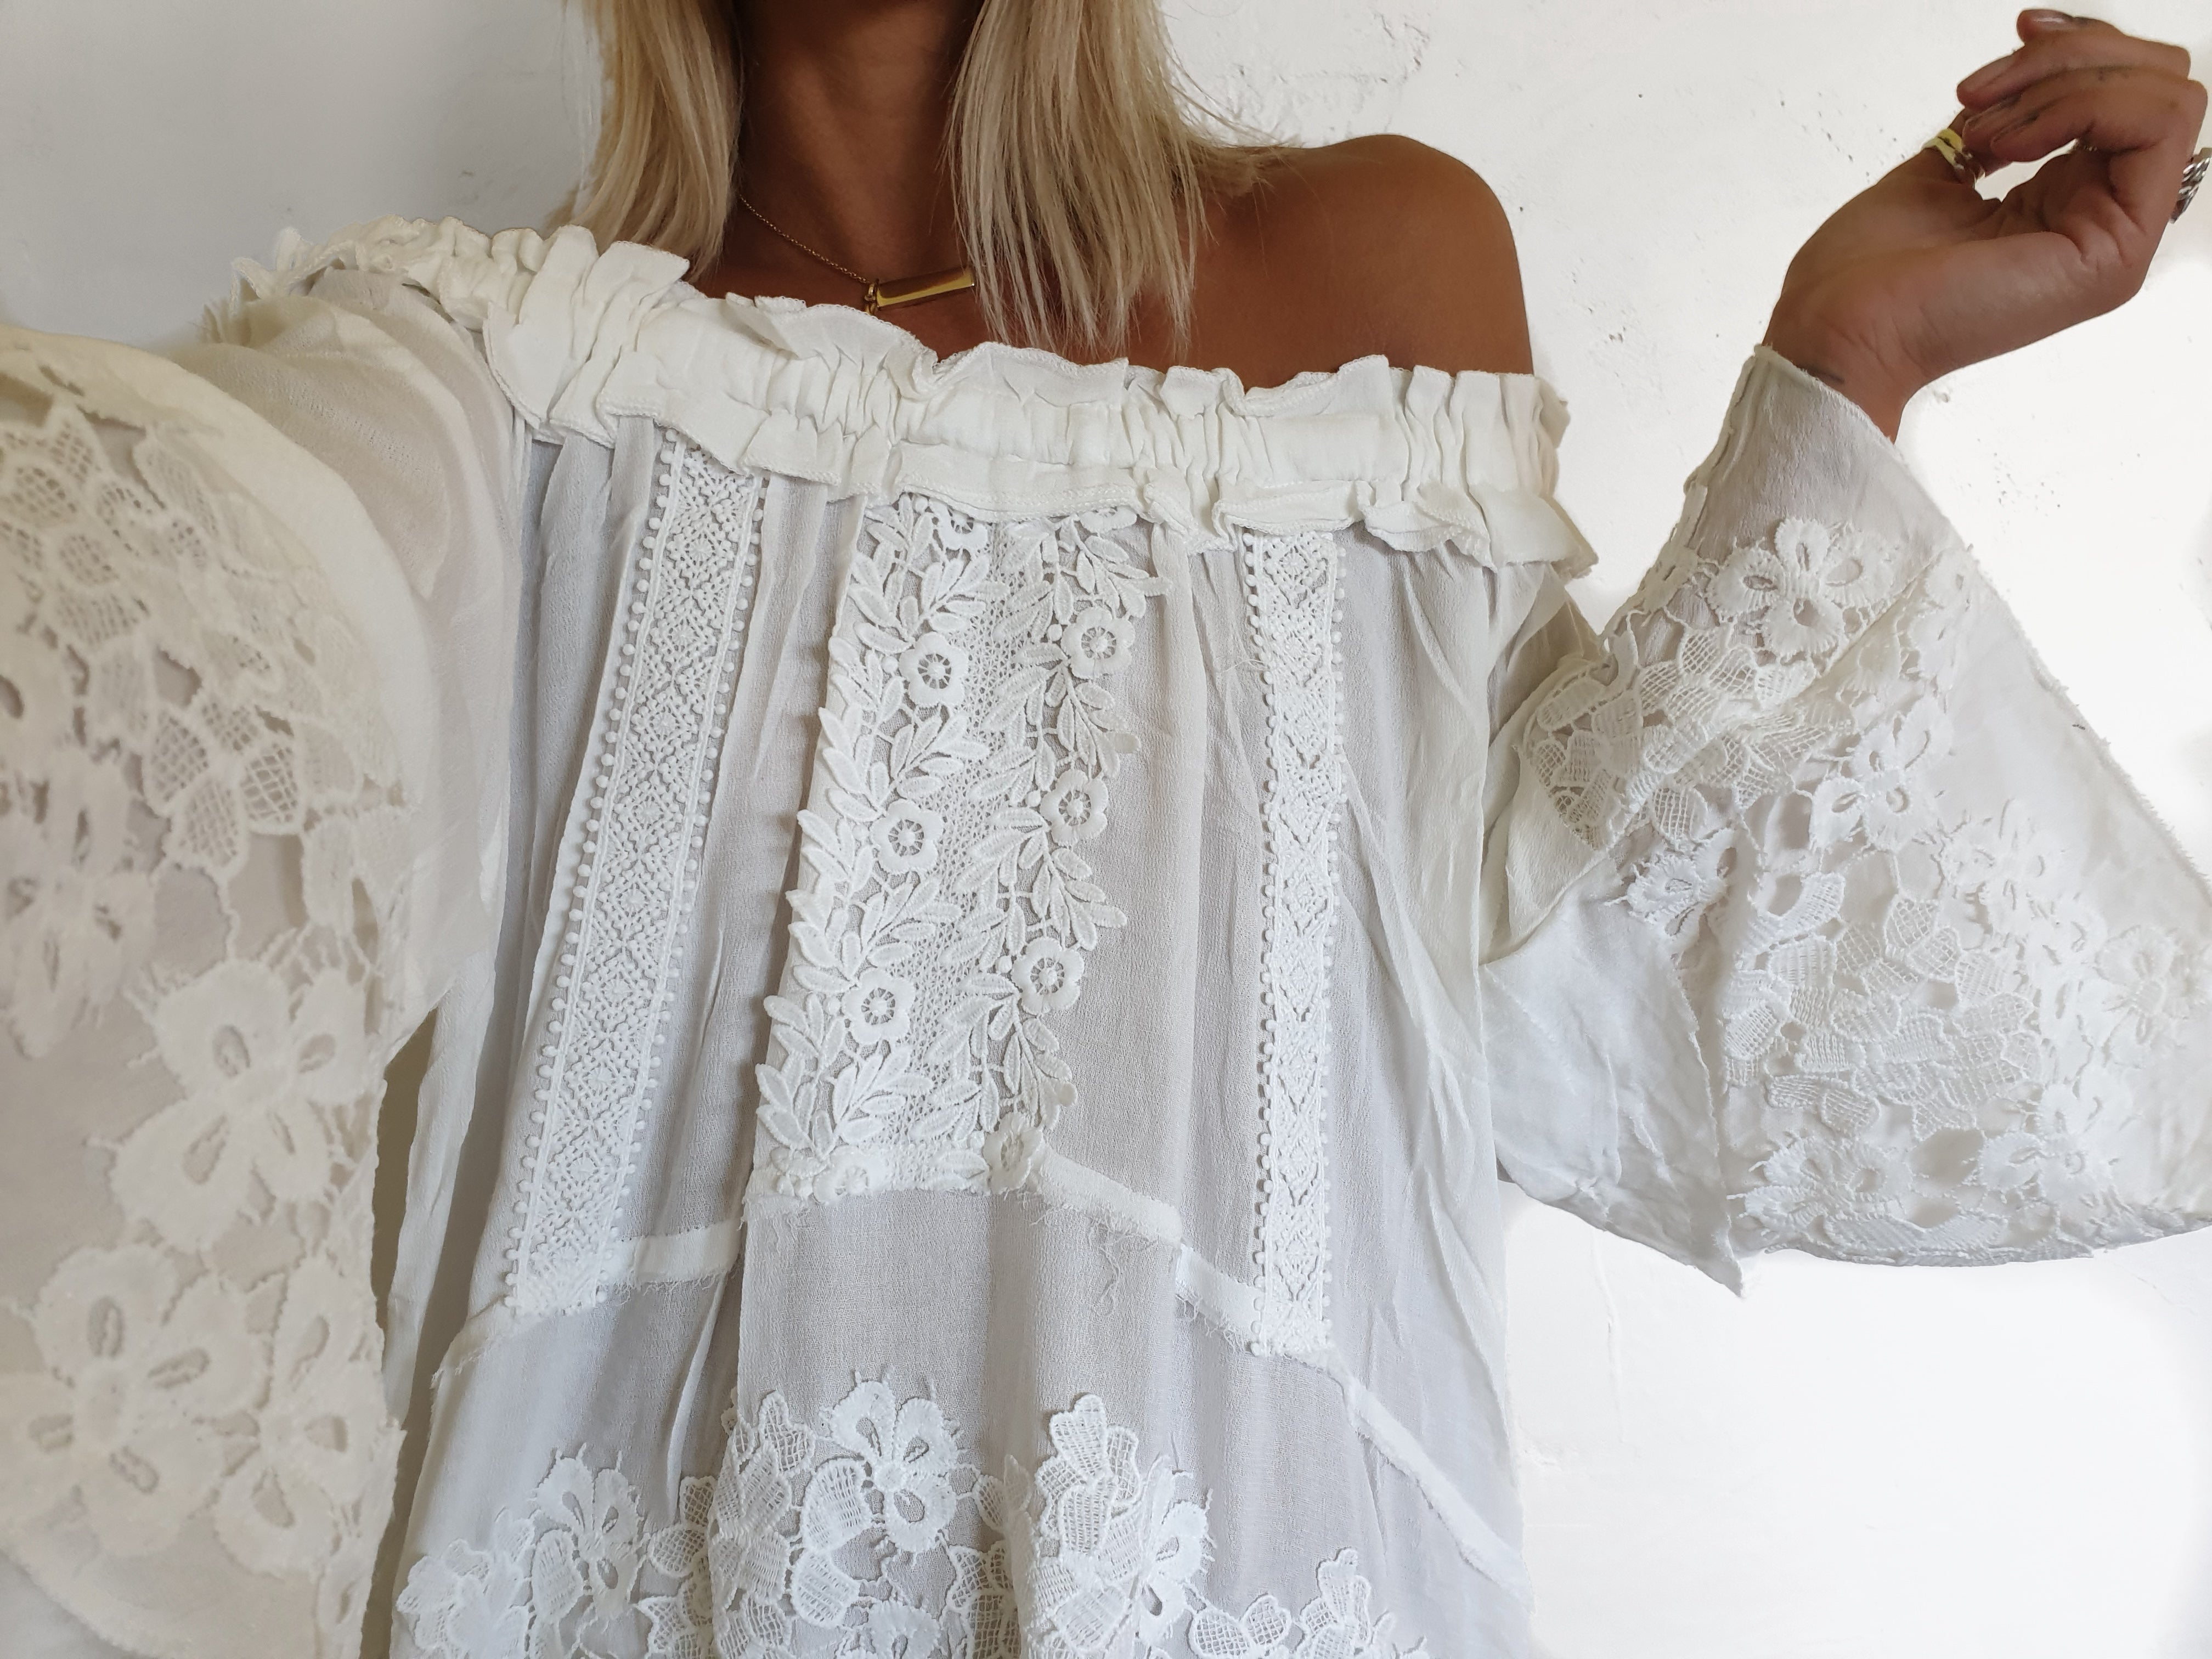 ROMME Lace Tunic - White